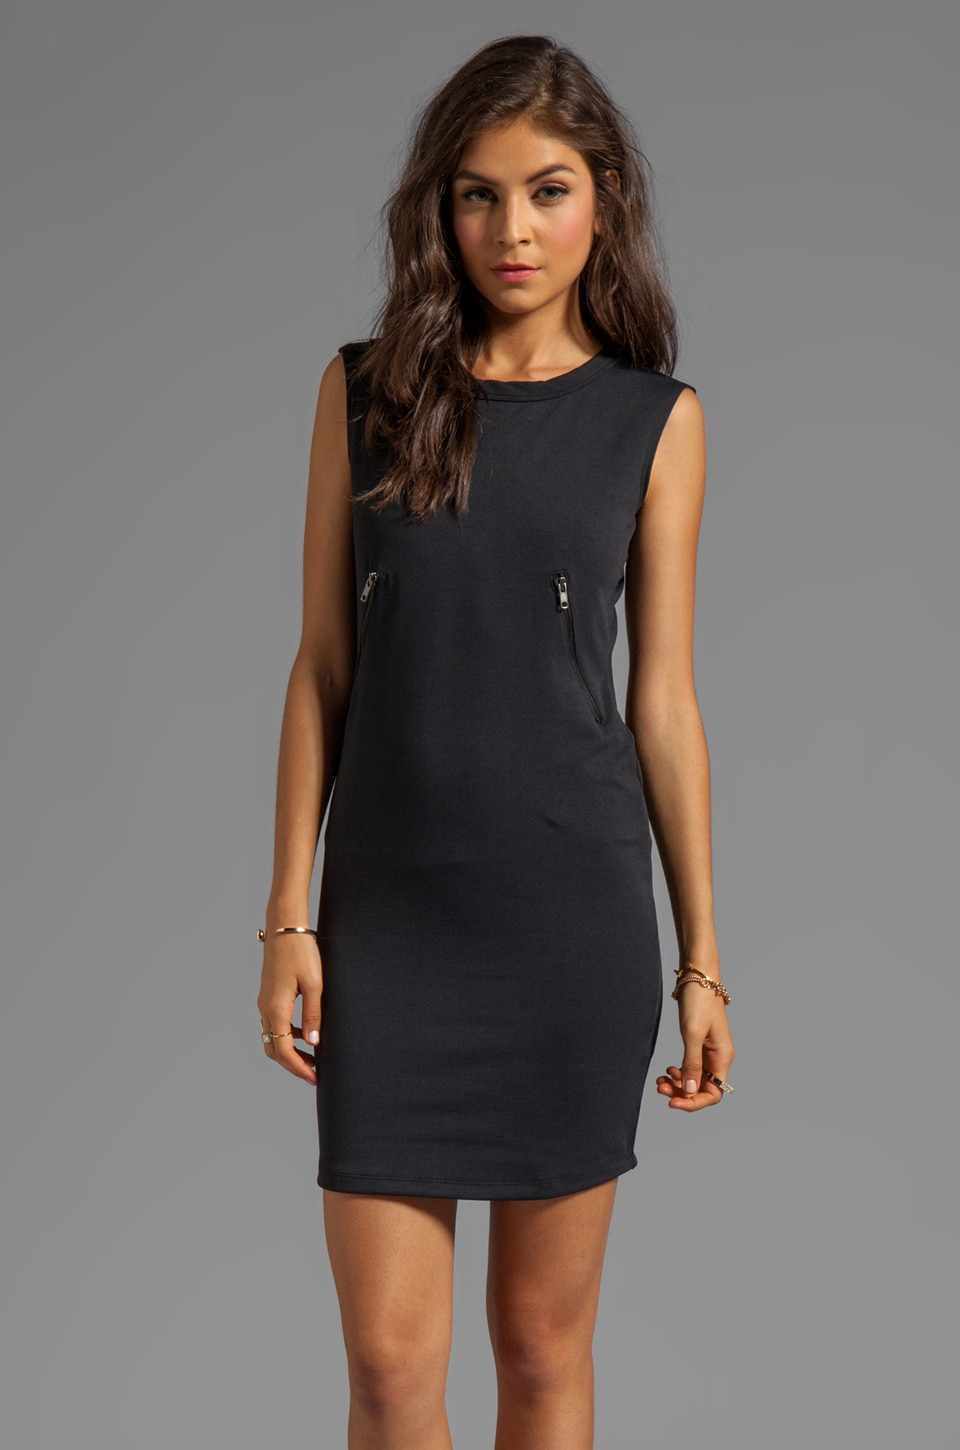 LNA Rex Dress in Black